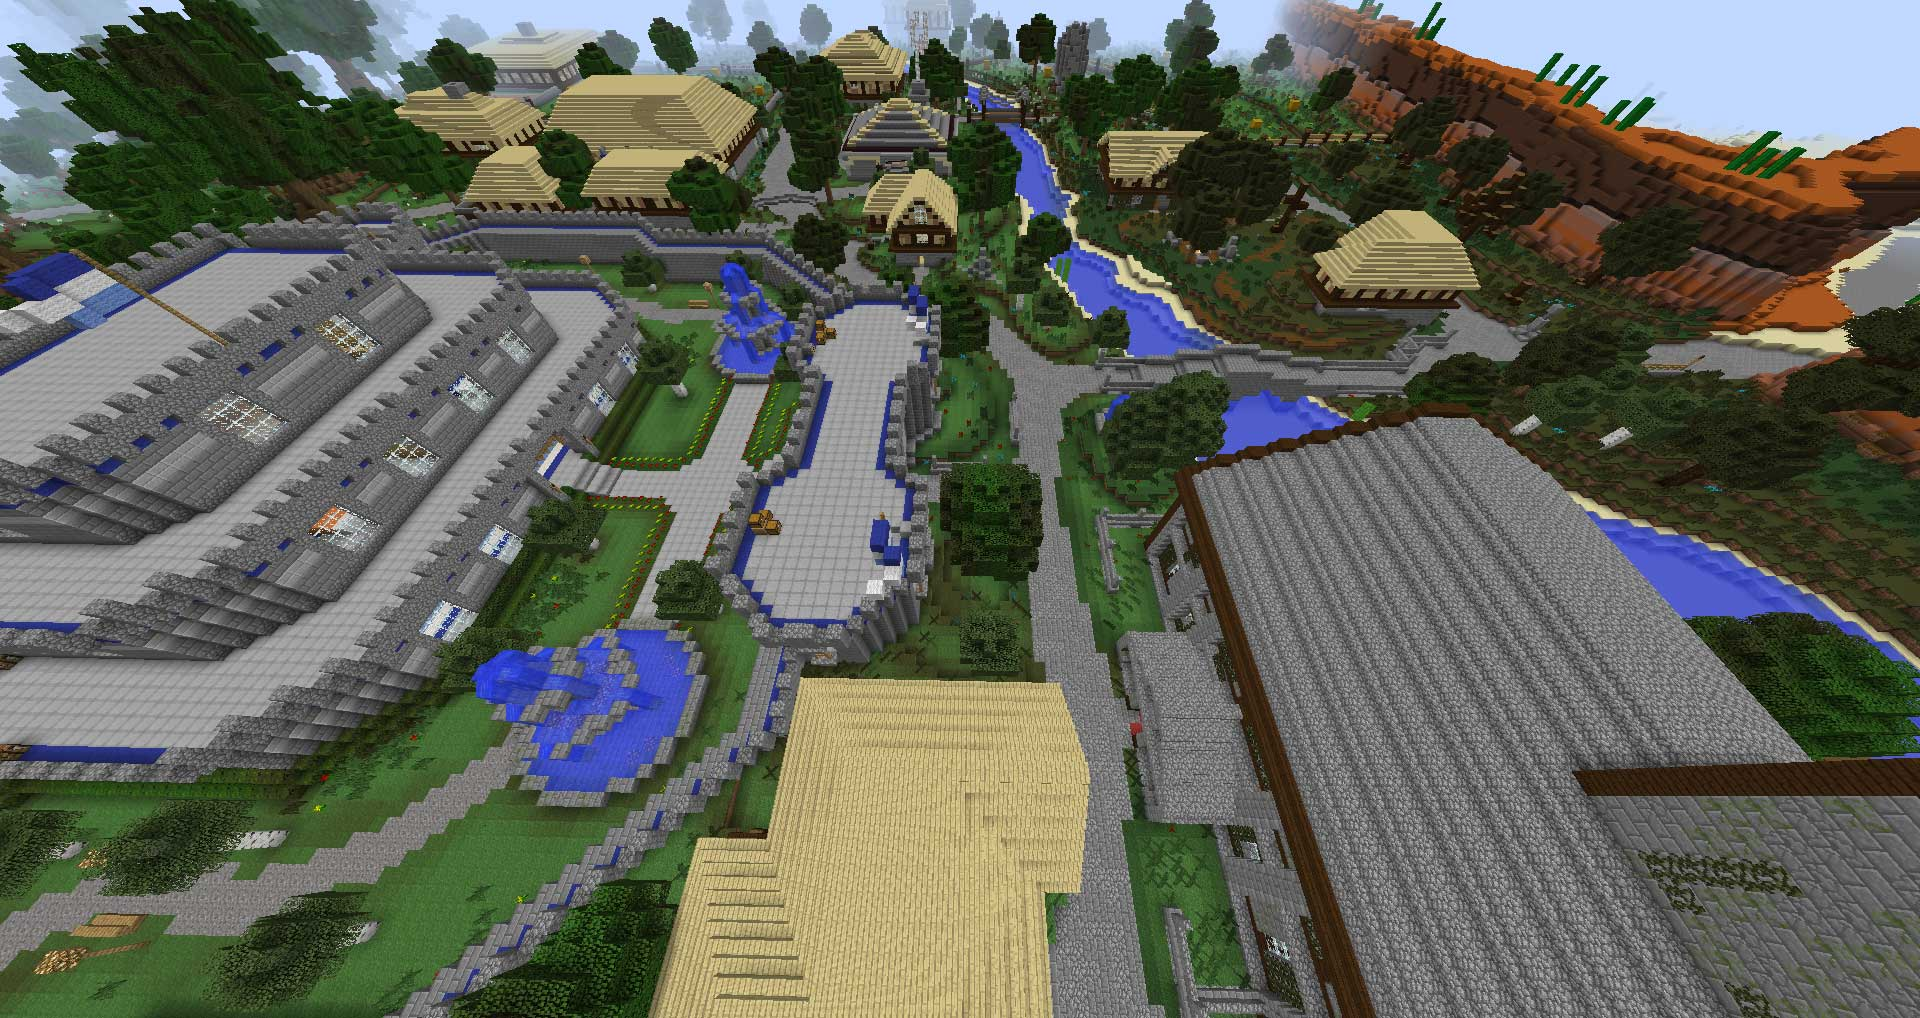 The whole of runescape inside minecraft boxmash minecraftrunescape minecraftrunescape02 publicscrutiny Image collections